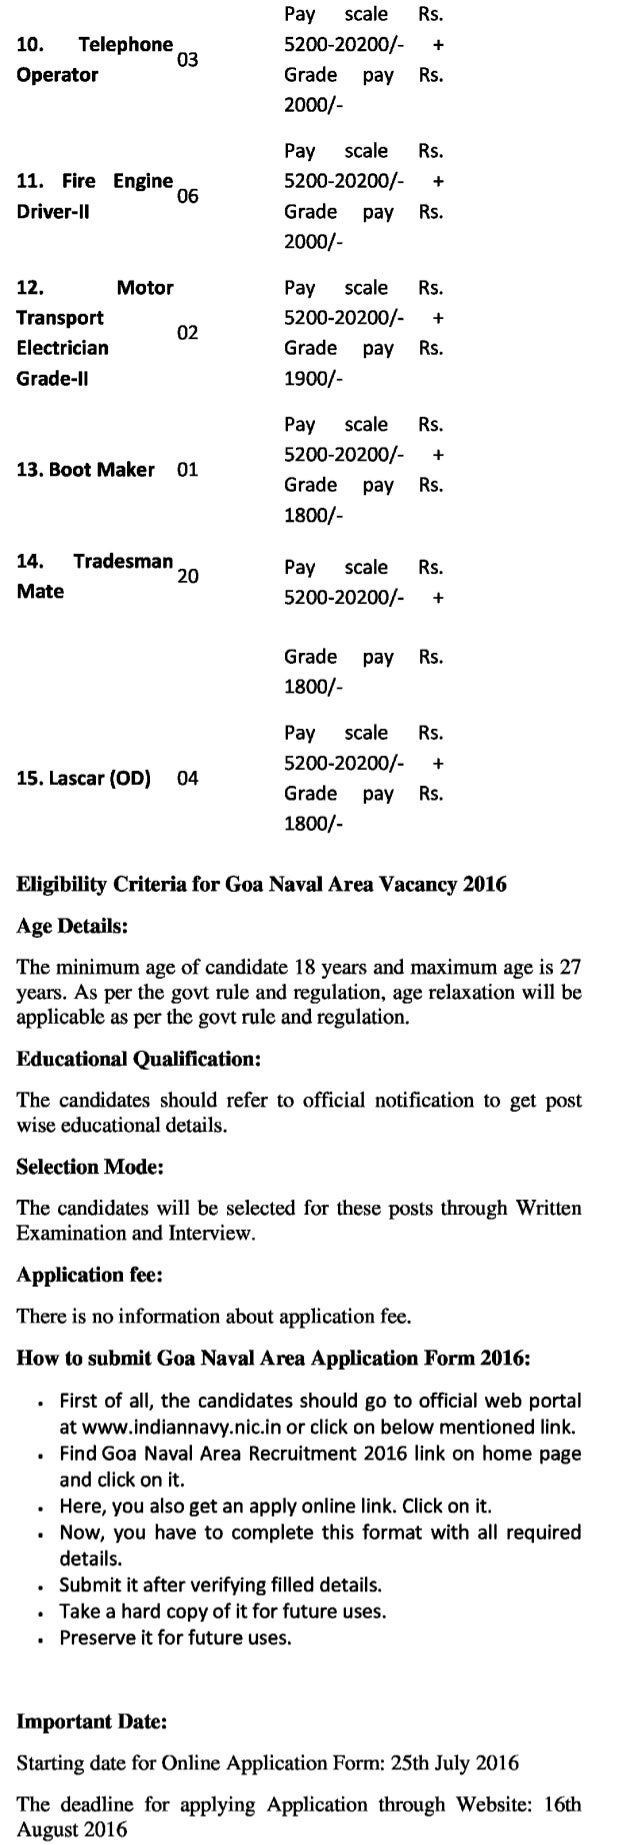 Goa naval area govt job recruitment 2016 latest  group 'c'  non gazetted vacancies exam resultd 6